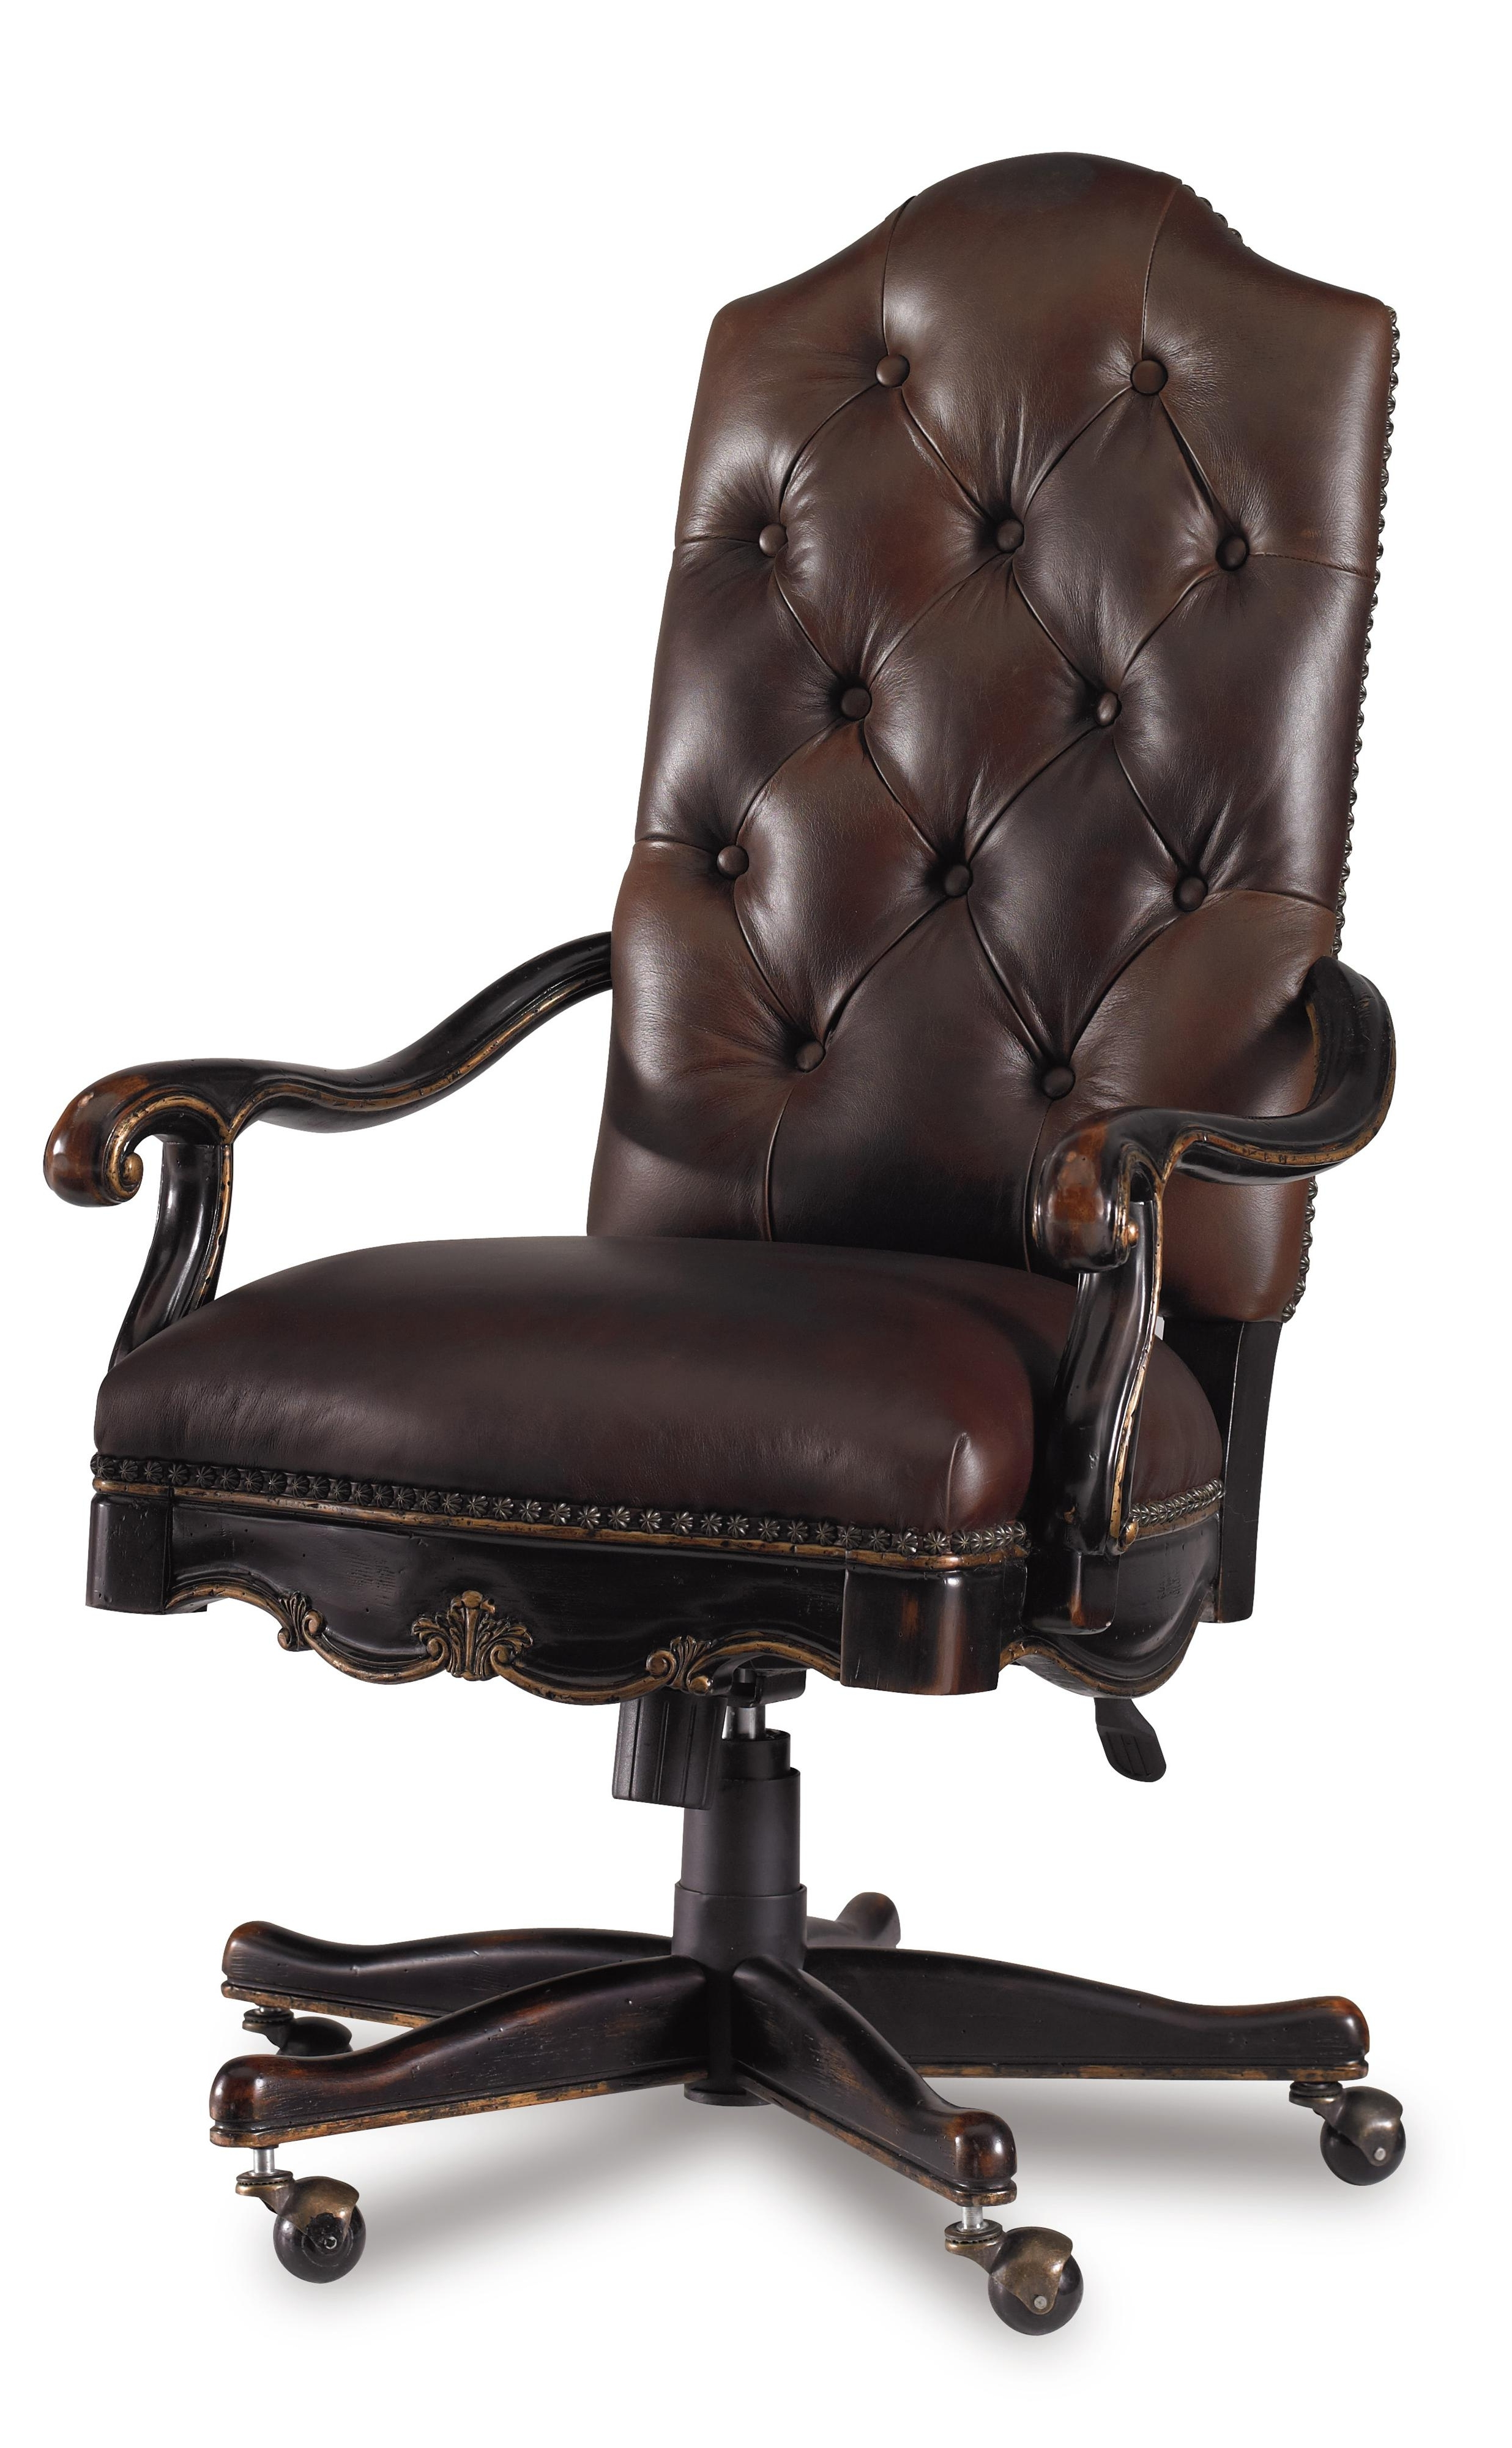 2019 Contemporary Executive Office Chairs Intended For Hooker Furniture Grandover Tufted Leather Executive Office Chair (View 1 of 20)